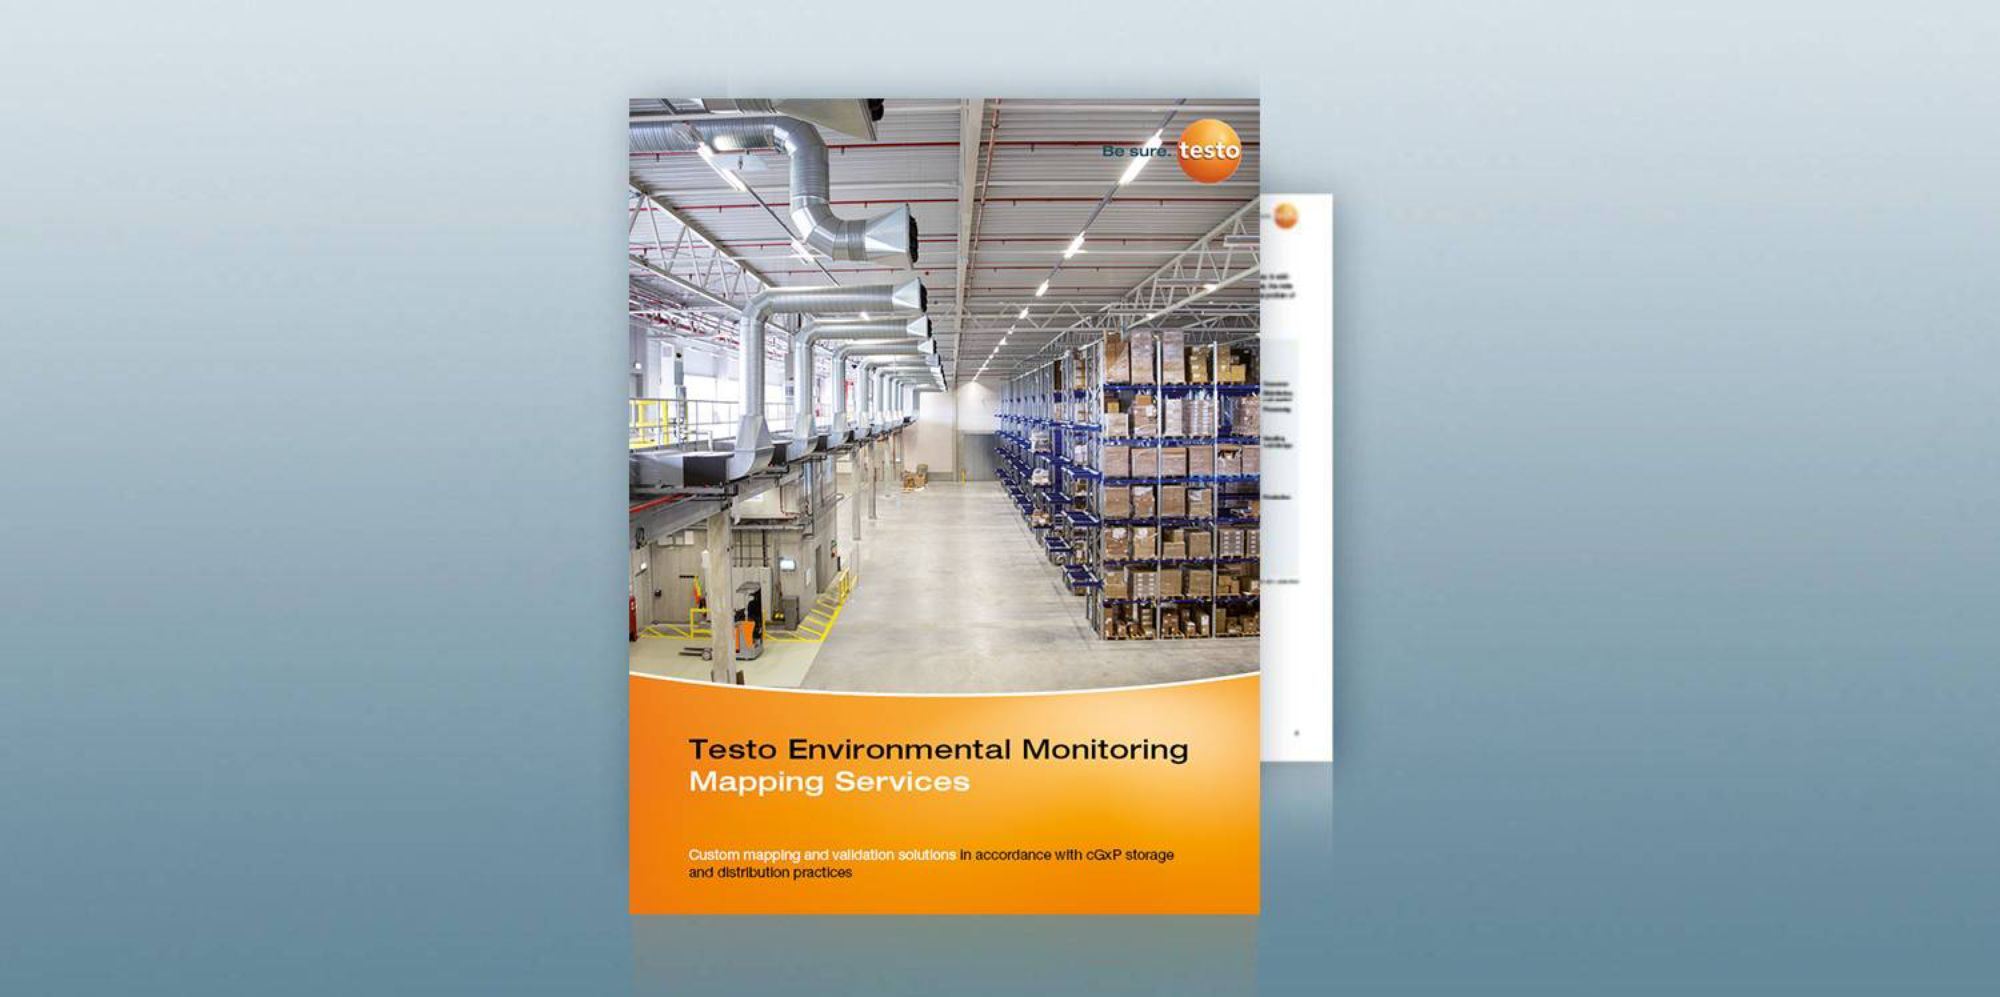 Testo-Mapping-Services-teaser-US.jpg